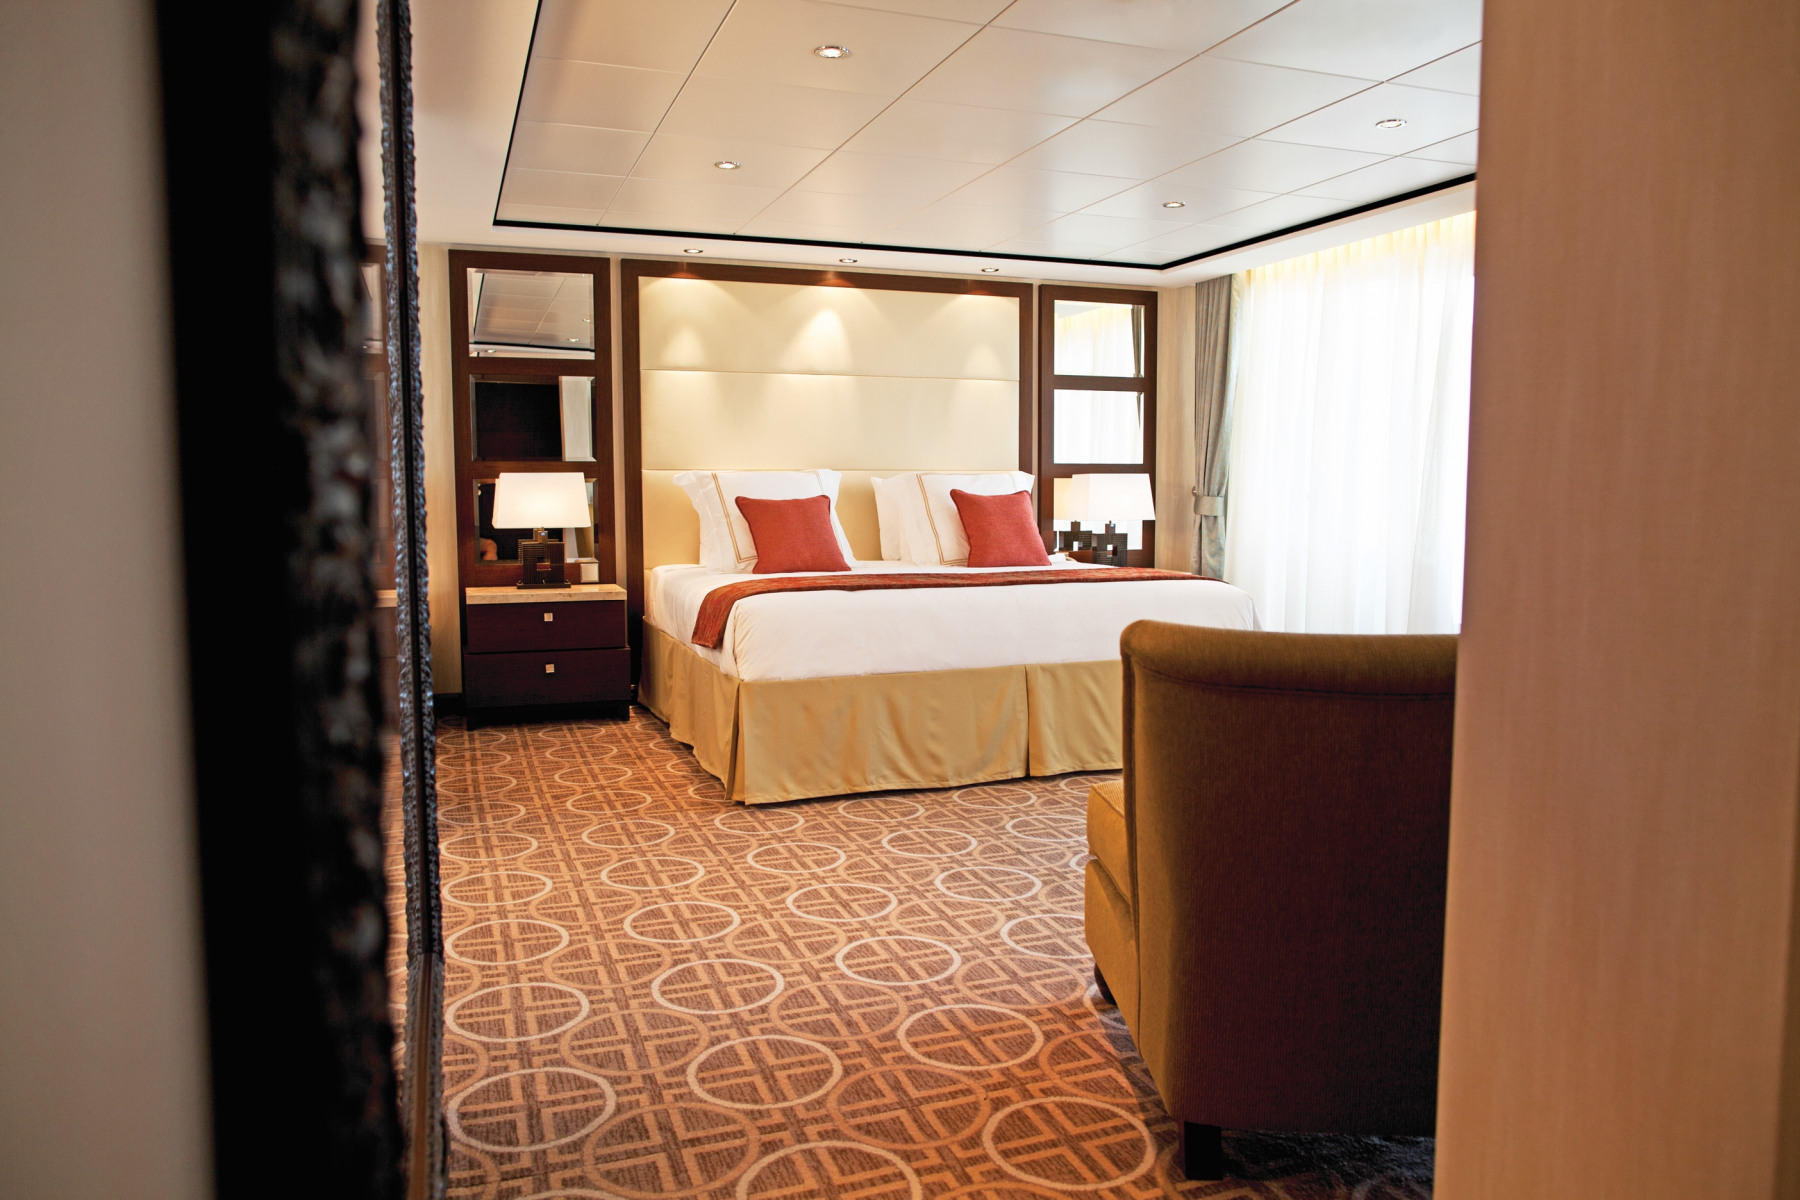 celebrity cruises celebrity silhouette ppenthouse suite bedroom .jpg